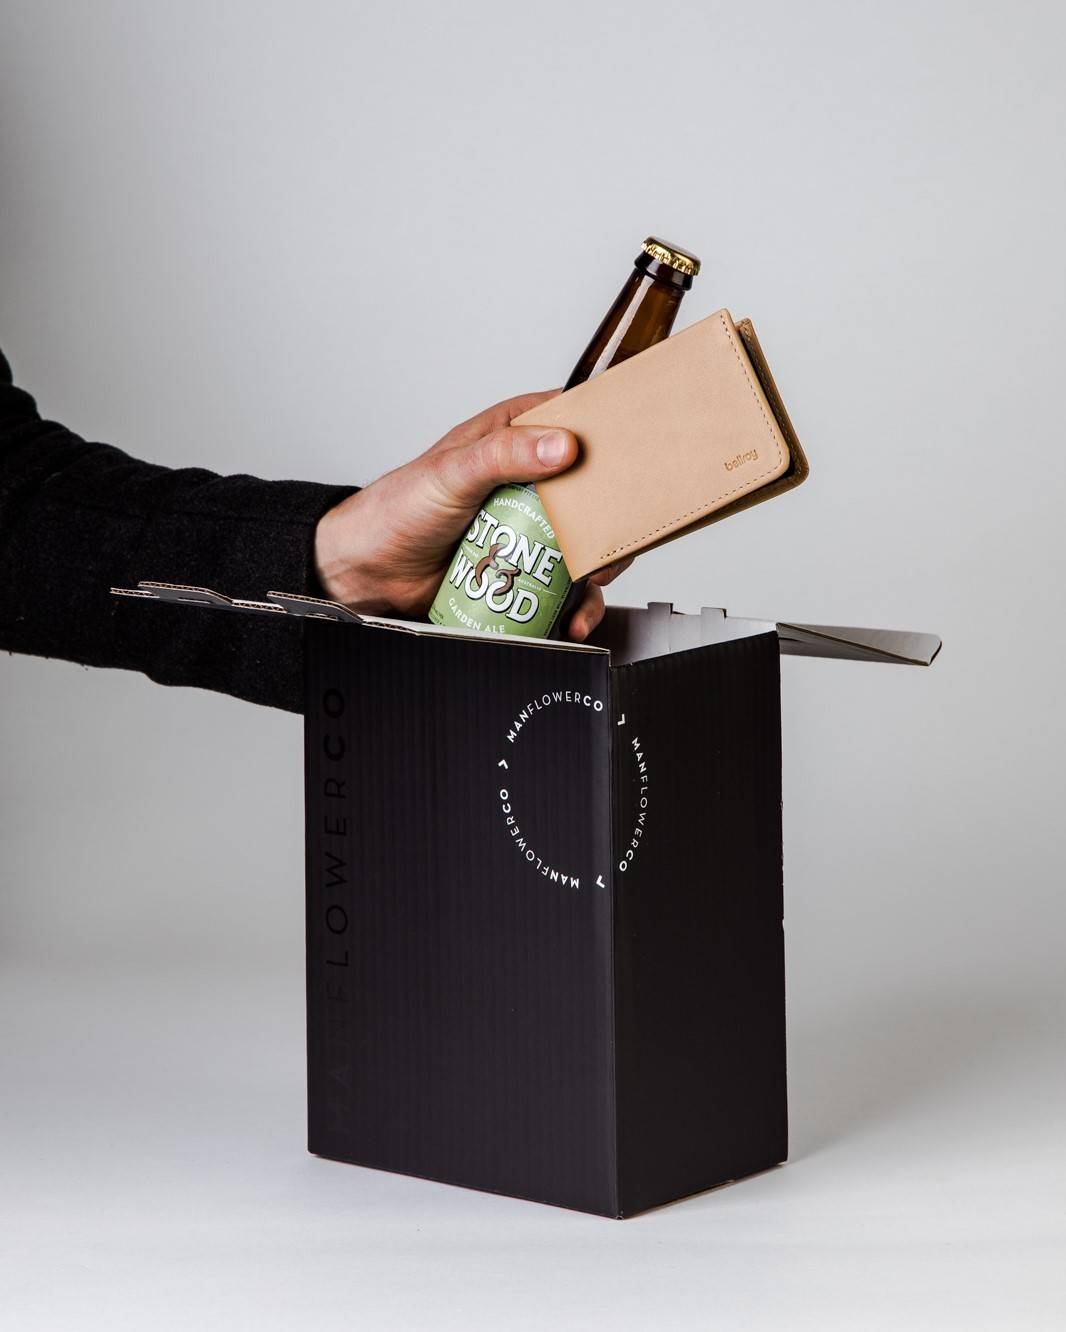 Bellroy The Low + Beer, part of Manflower Co's range of Father's Day Gifts.